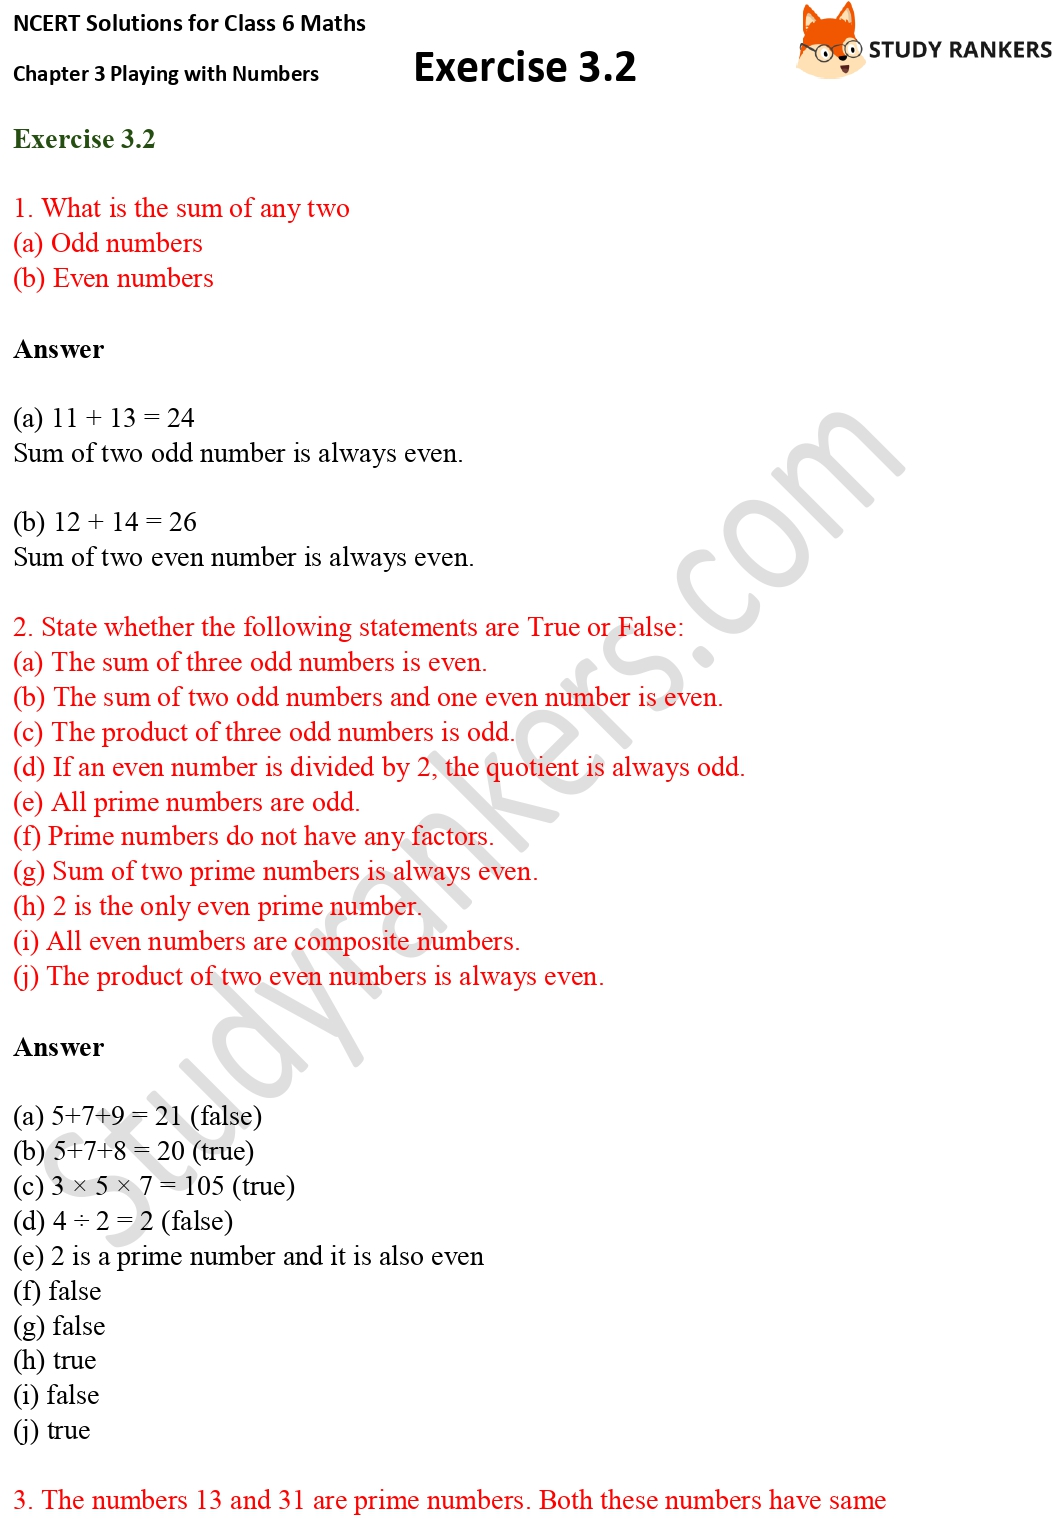 NCERT Solutions for Class 6 Maths Chapter 3 Playing with Numbers Exercise 3.2 Part 1